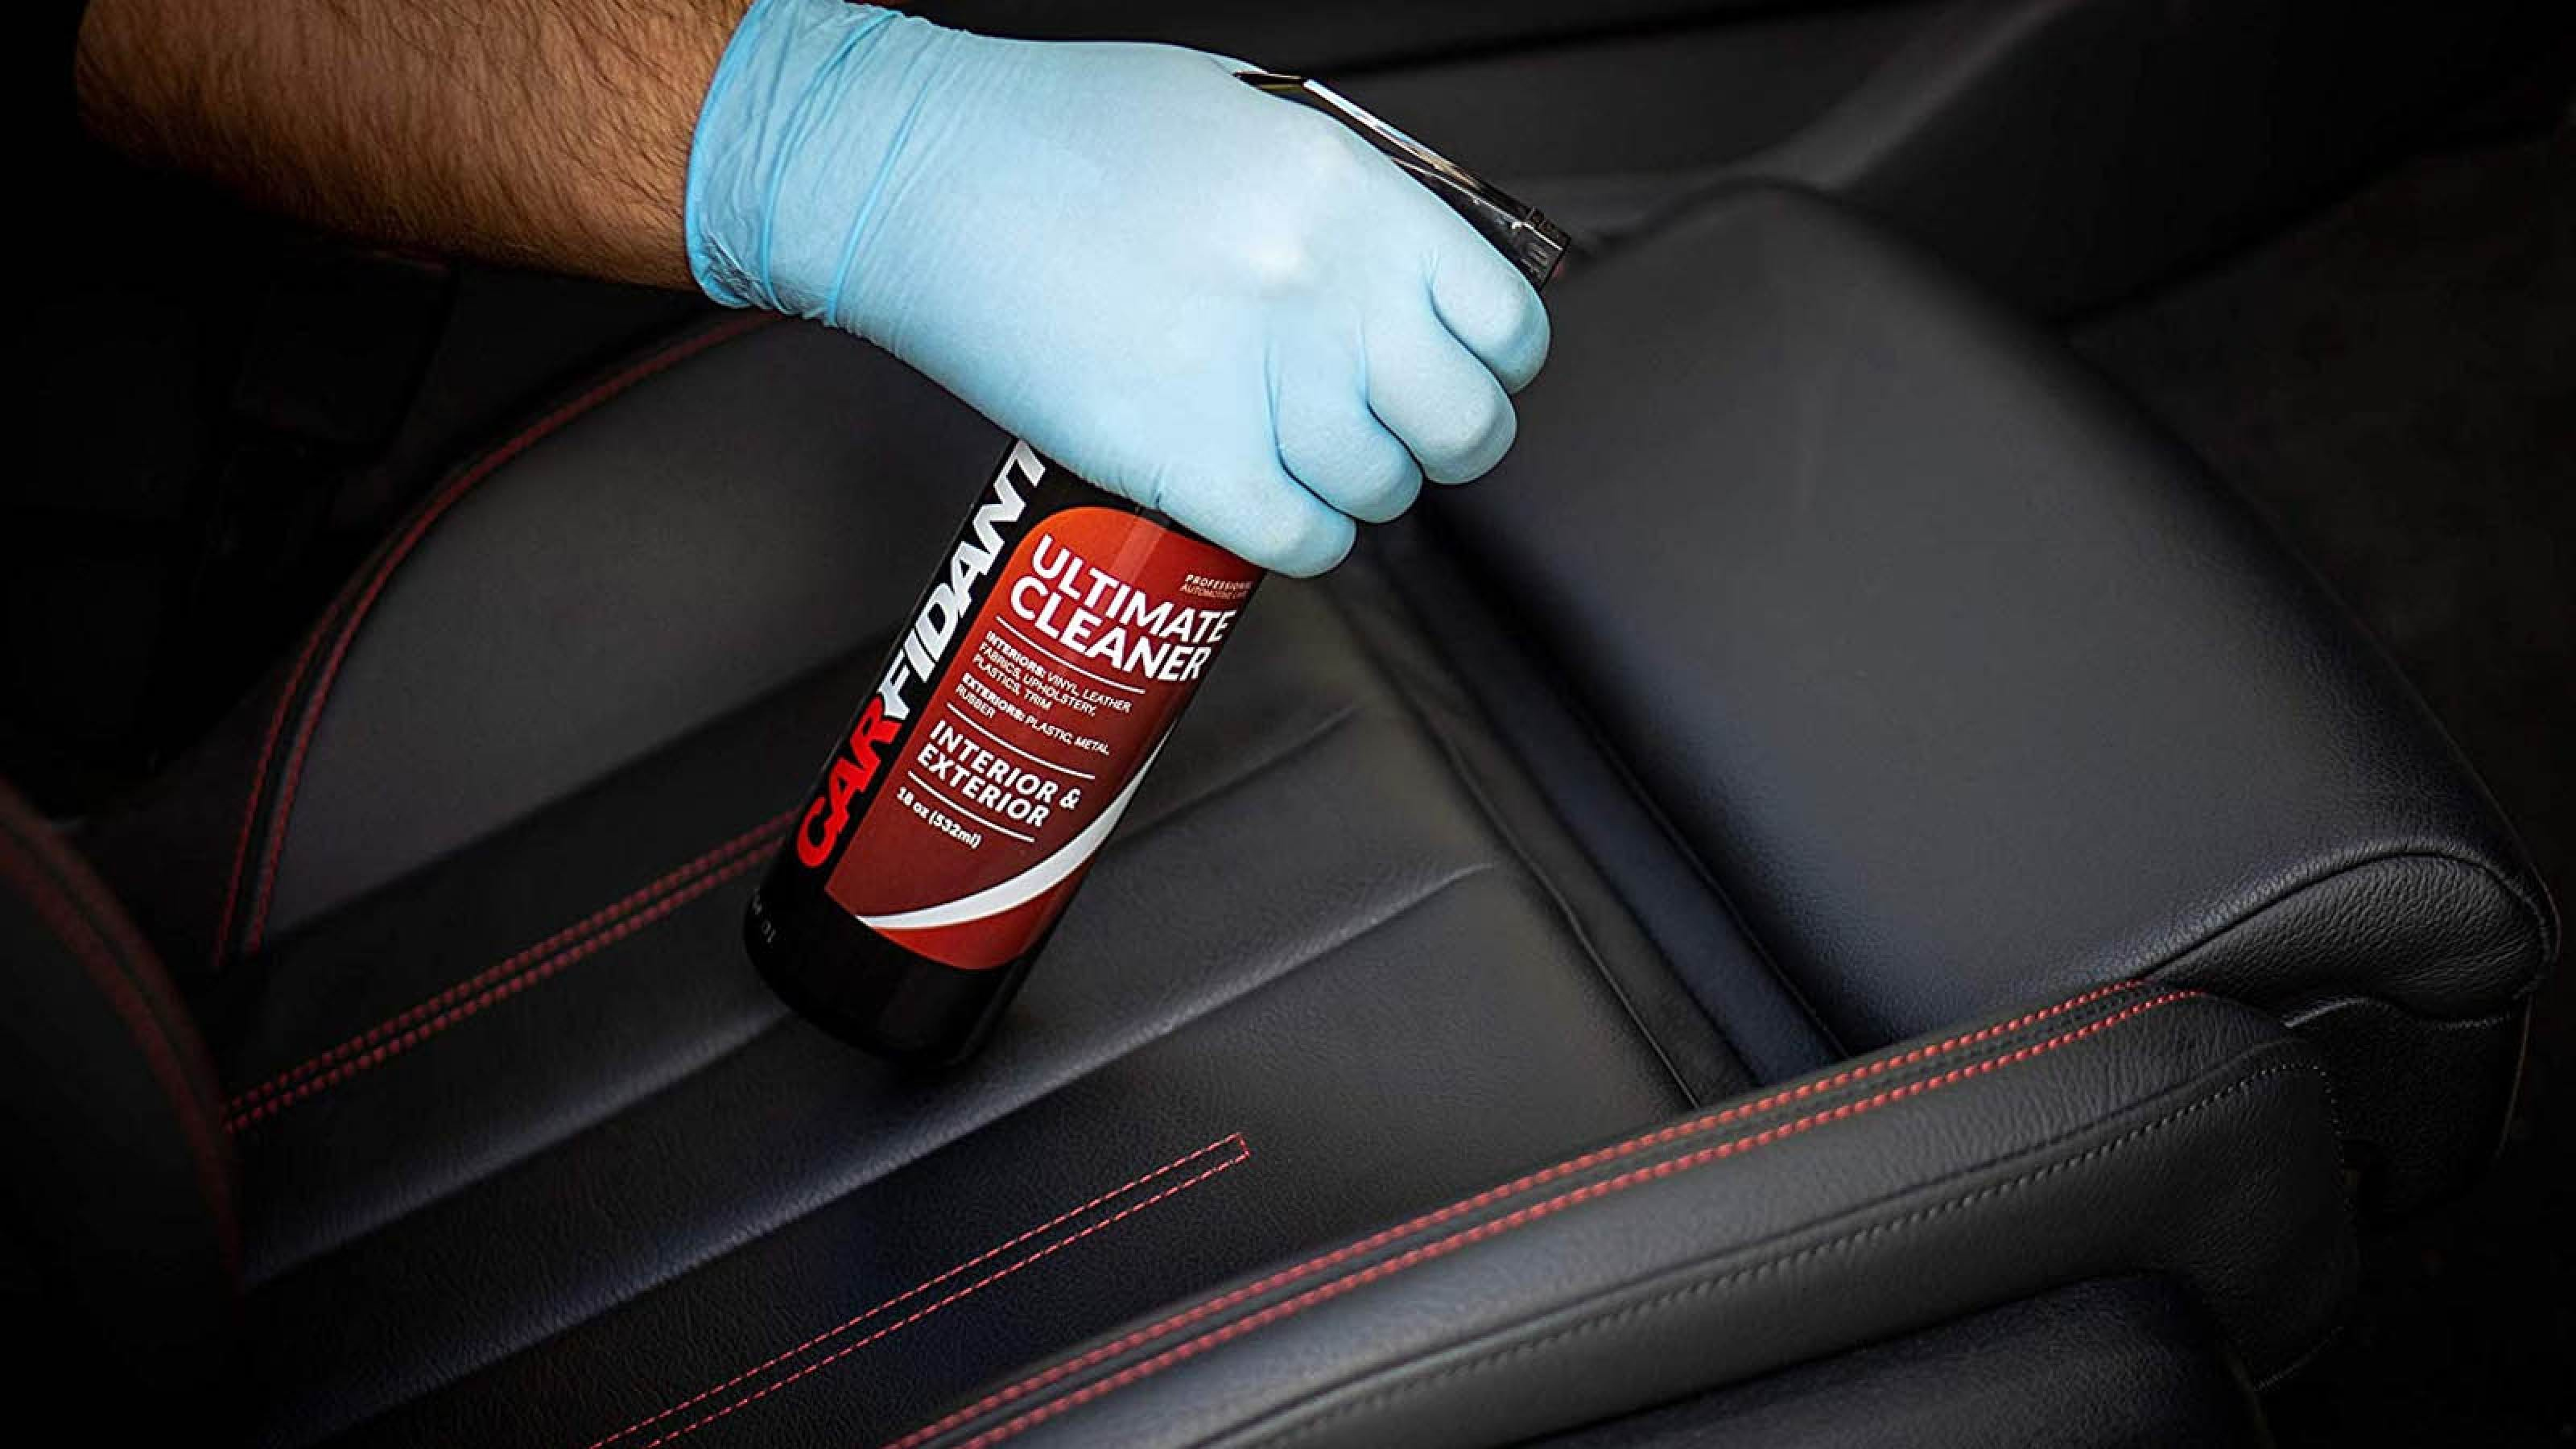 4 Awesome Interior Car Cleaners To Keep Your Vehicle Showroom Fresh Review Geek